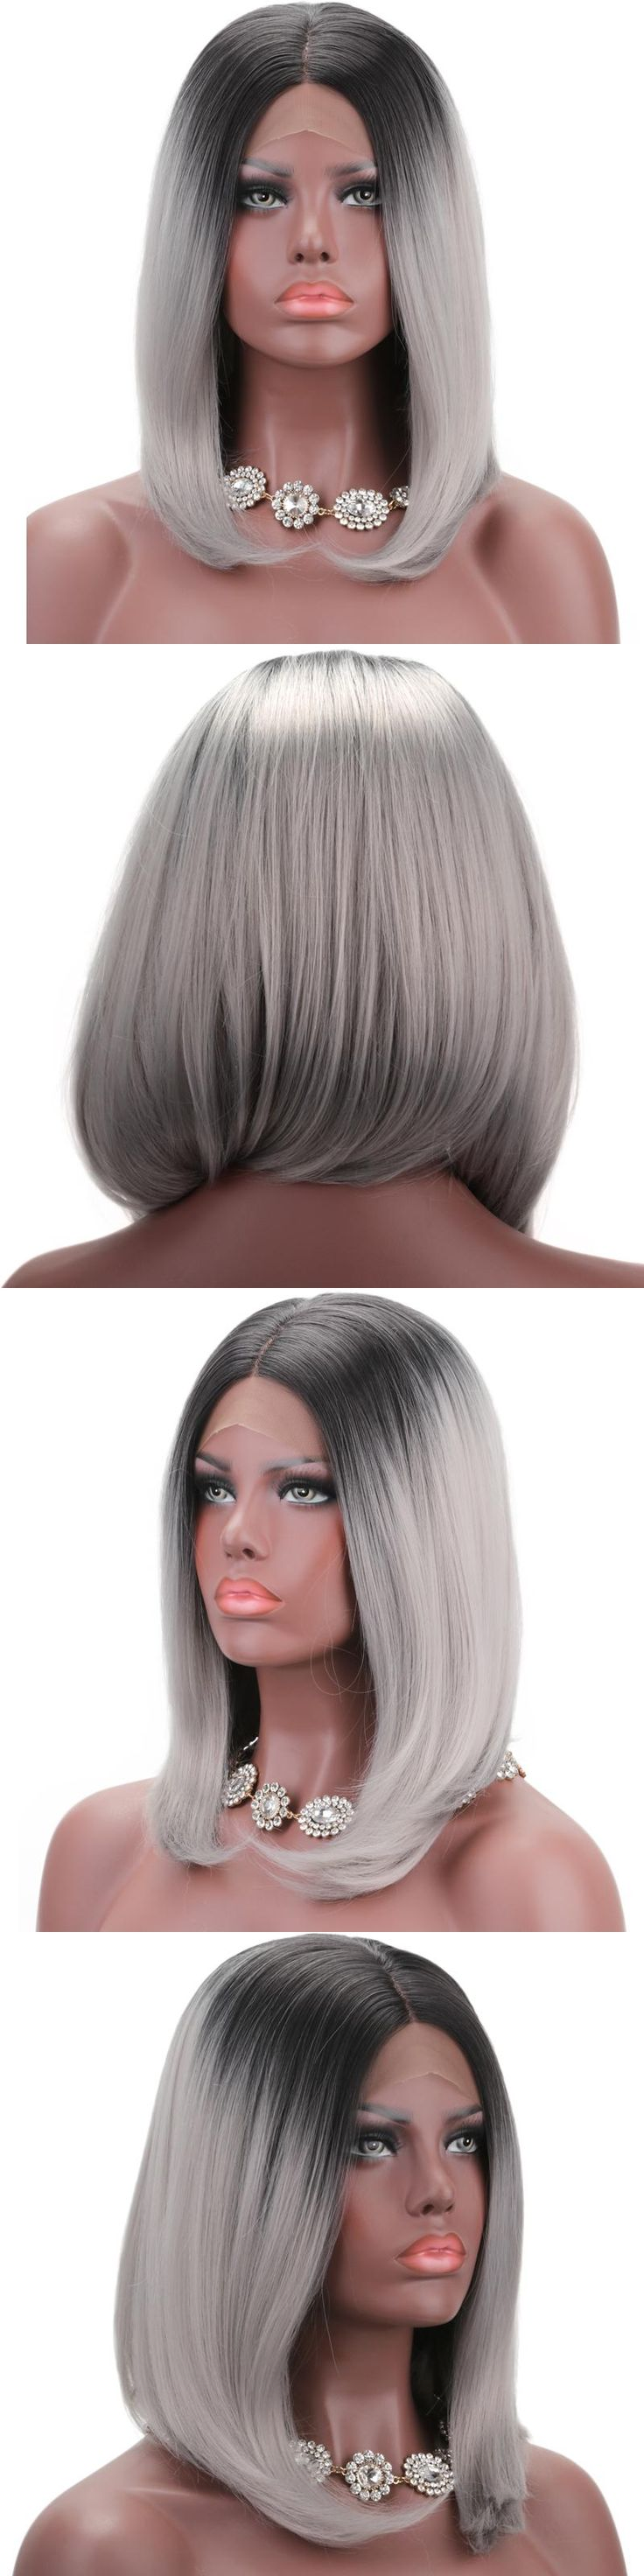 COLODO Ombre Two Tone Synthetic Grey Hair Wigs Natural Bob Cut Silky Straight Heat Resistant Silver Wigs For Black Women